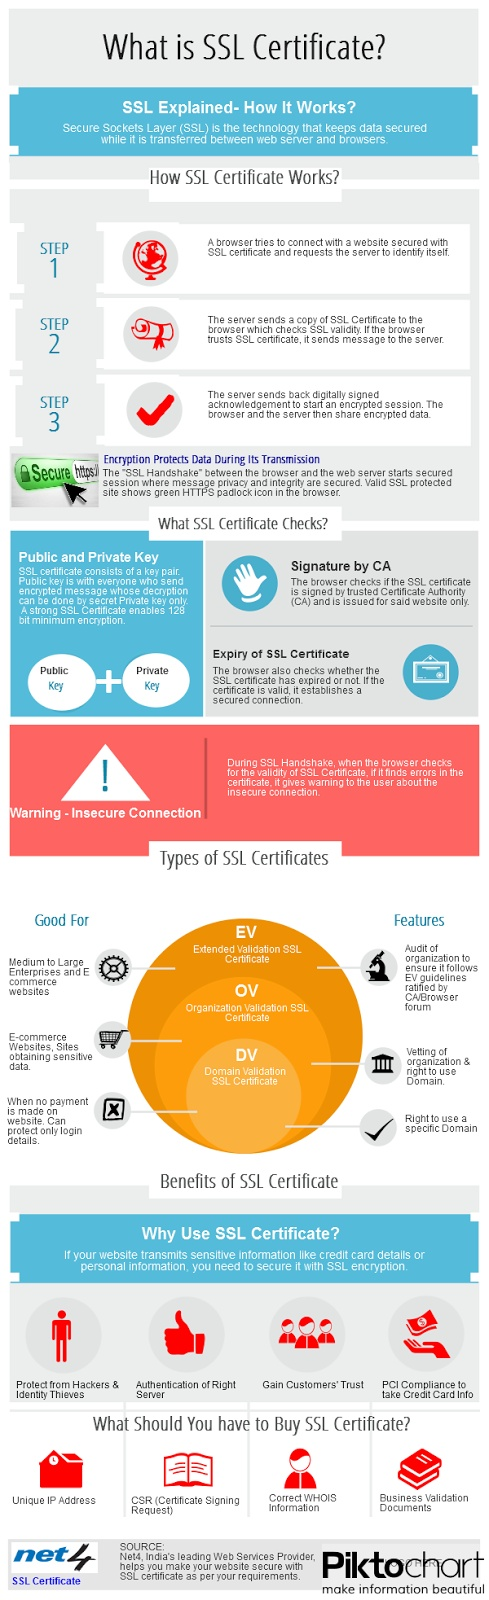 #digitalcertificate Infographic What is #SSL Certificate and How It Works for online businesses?